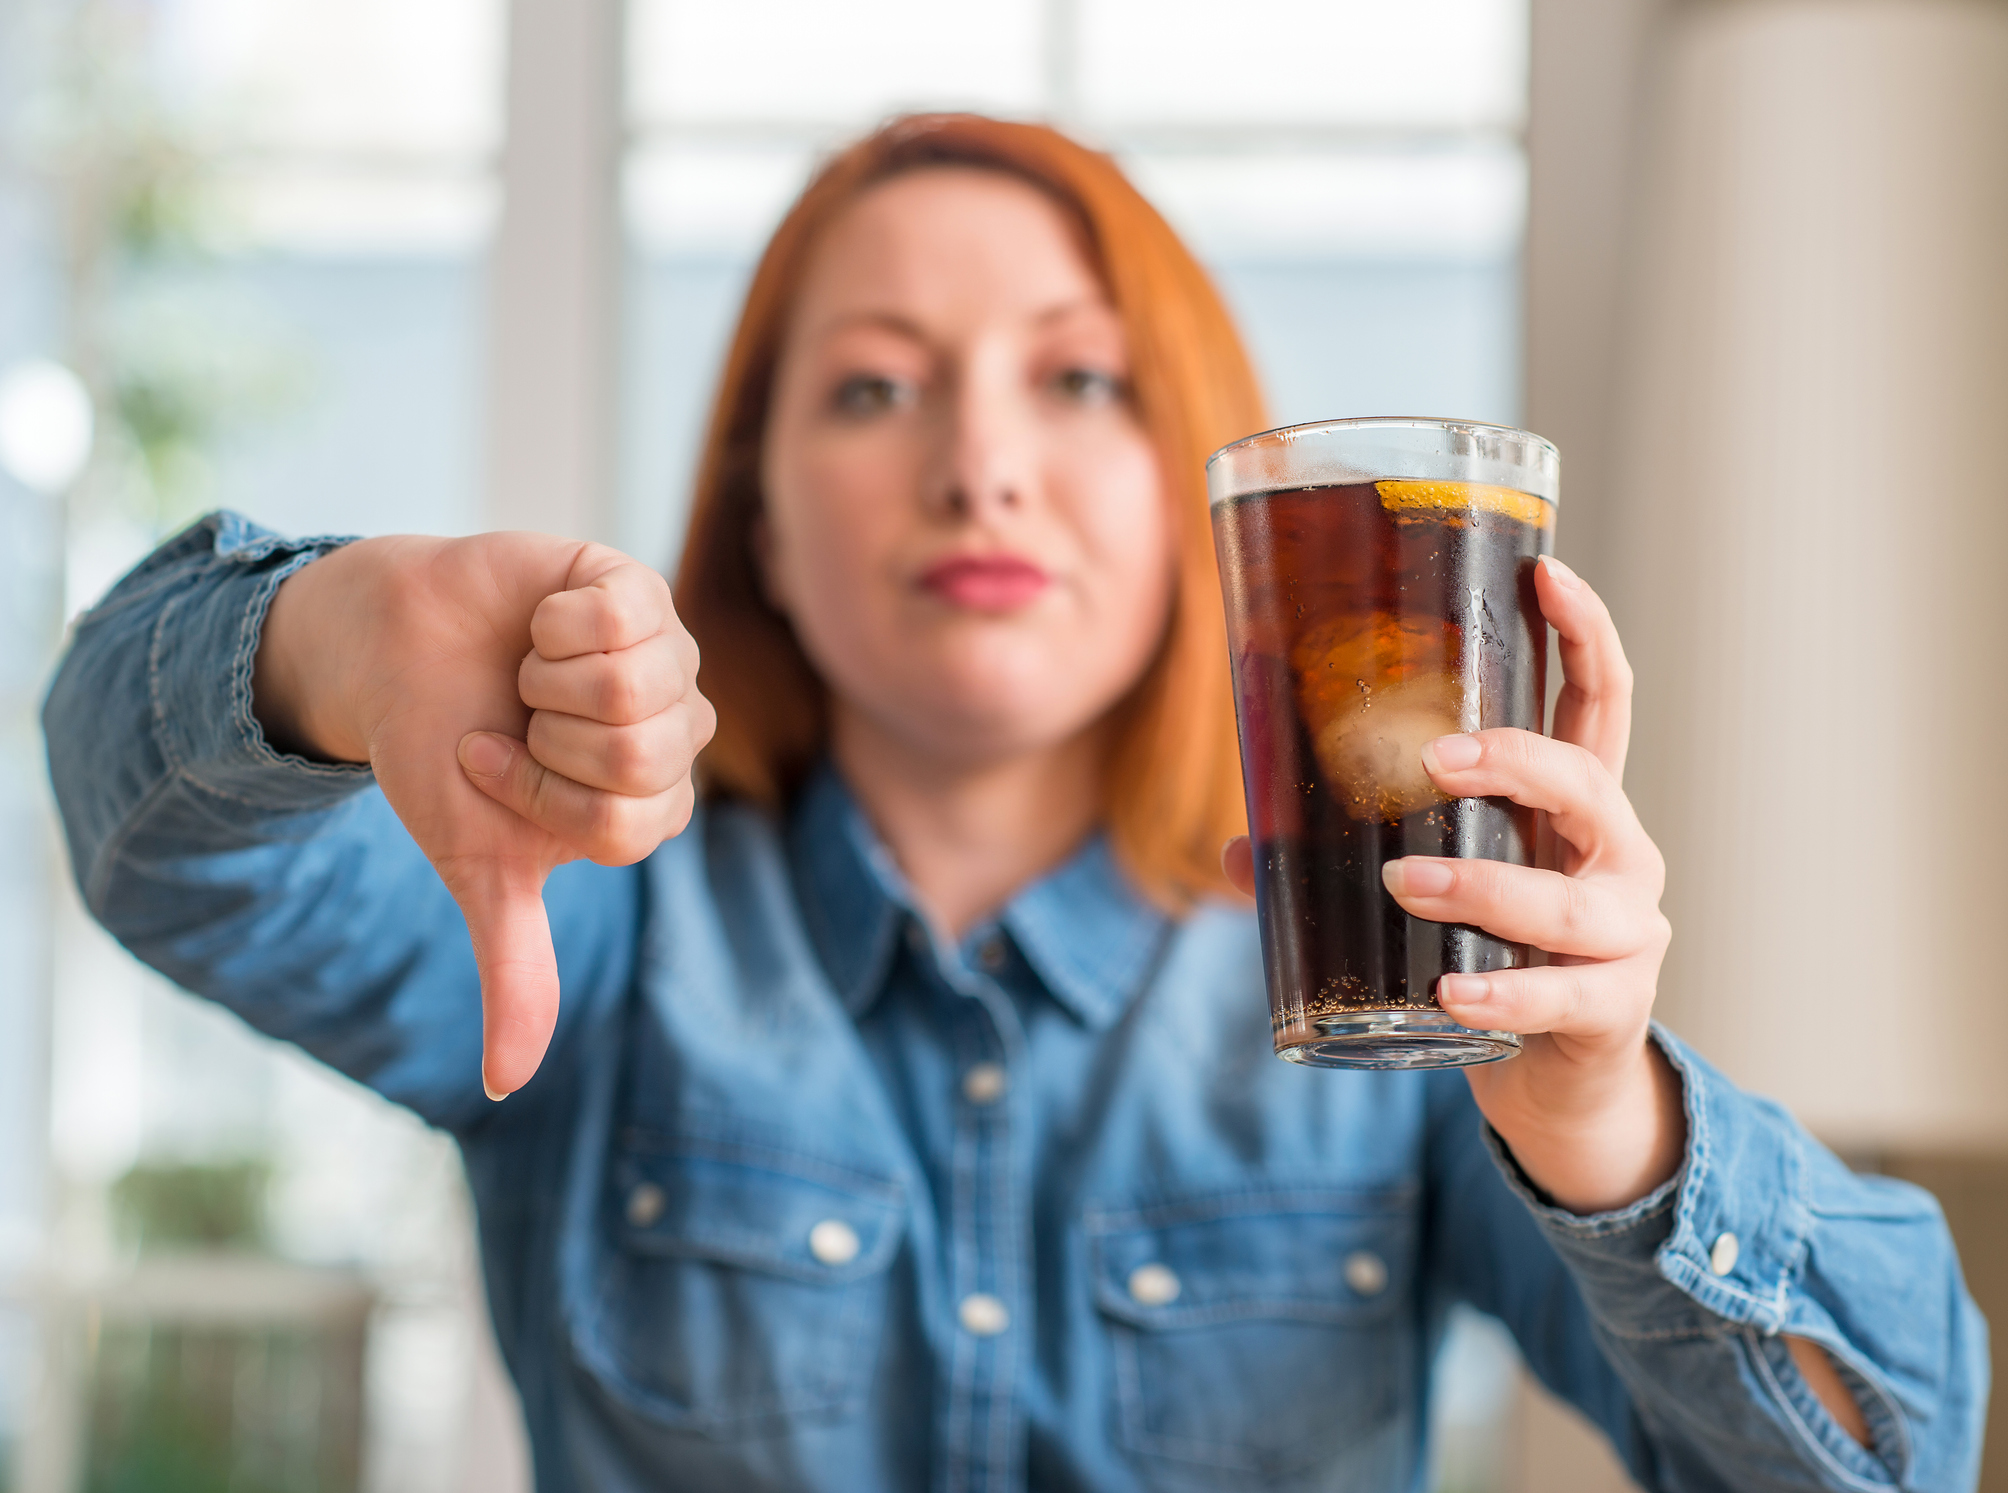 Those sweet drinks you love? They're aging you faster